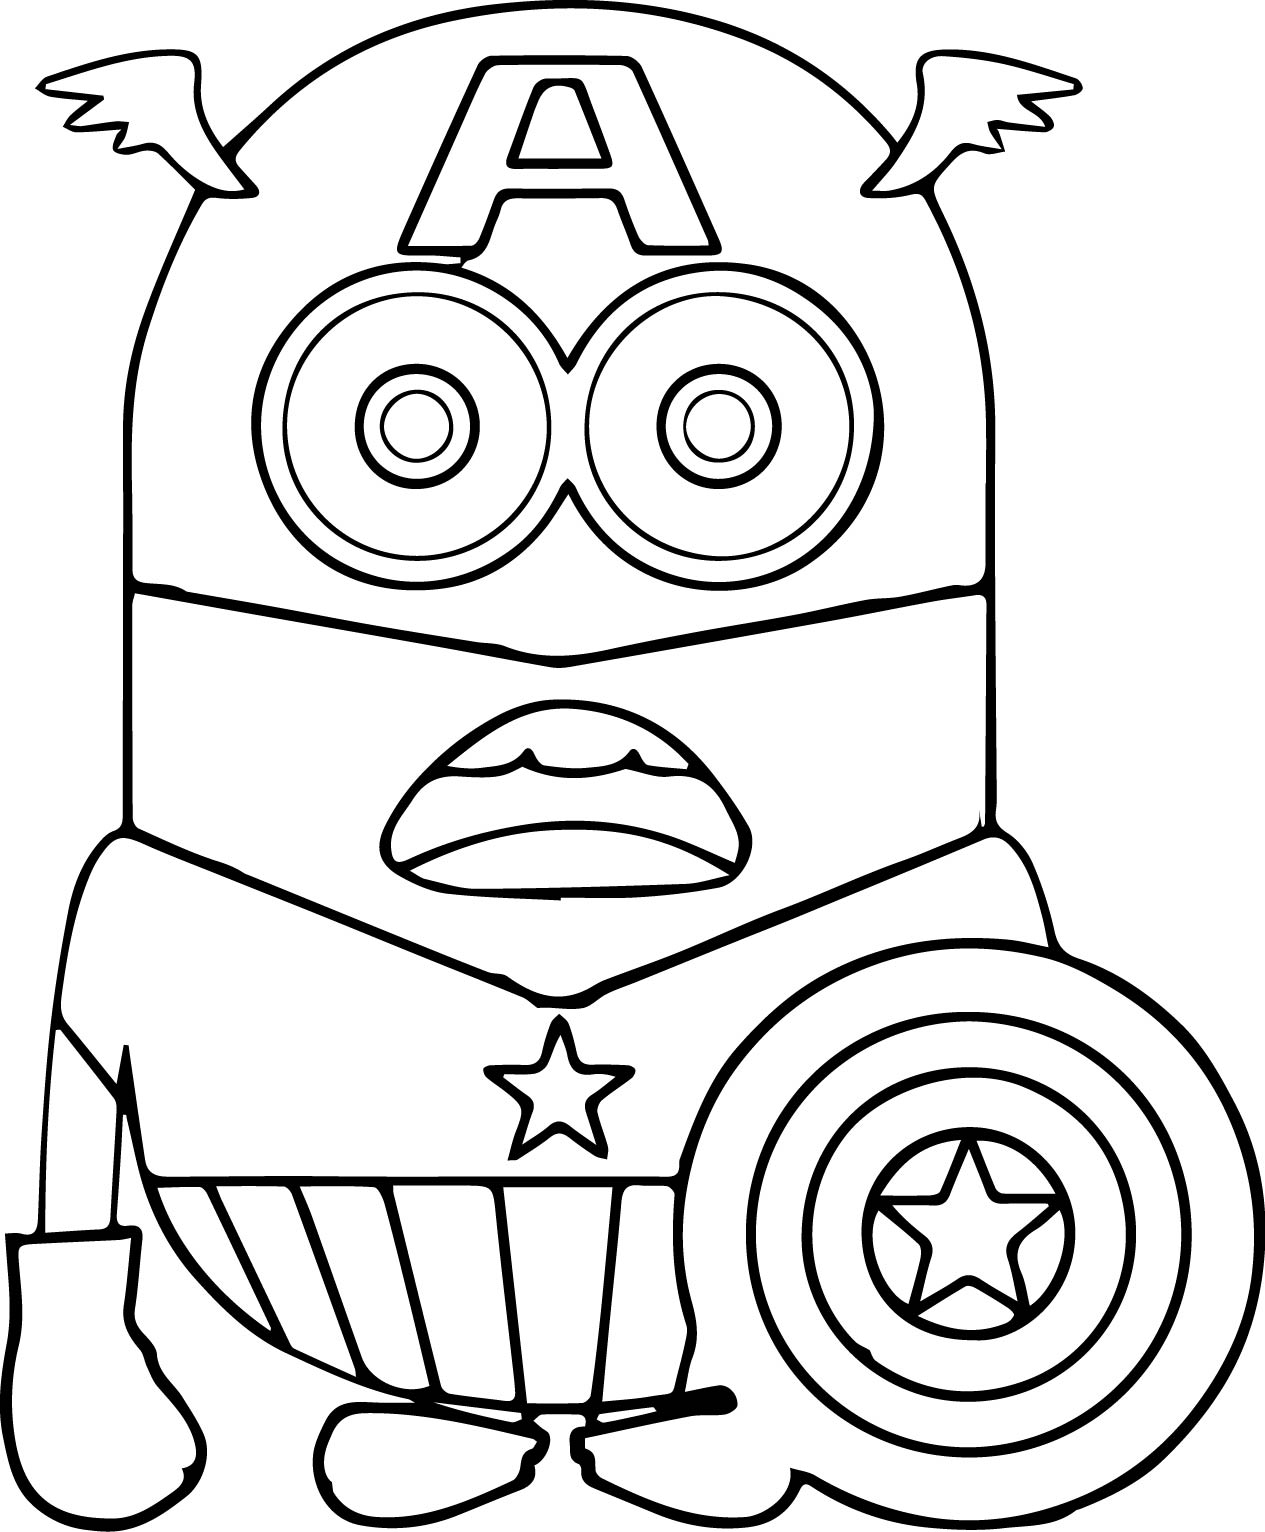 1265x1532 Minion Coloring Pages Coloring Pages Free Coloring Pages